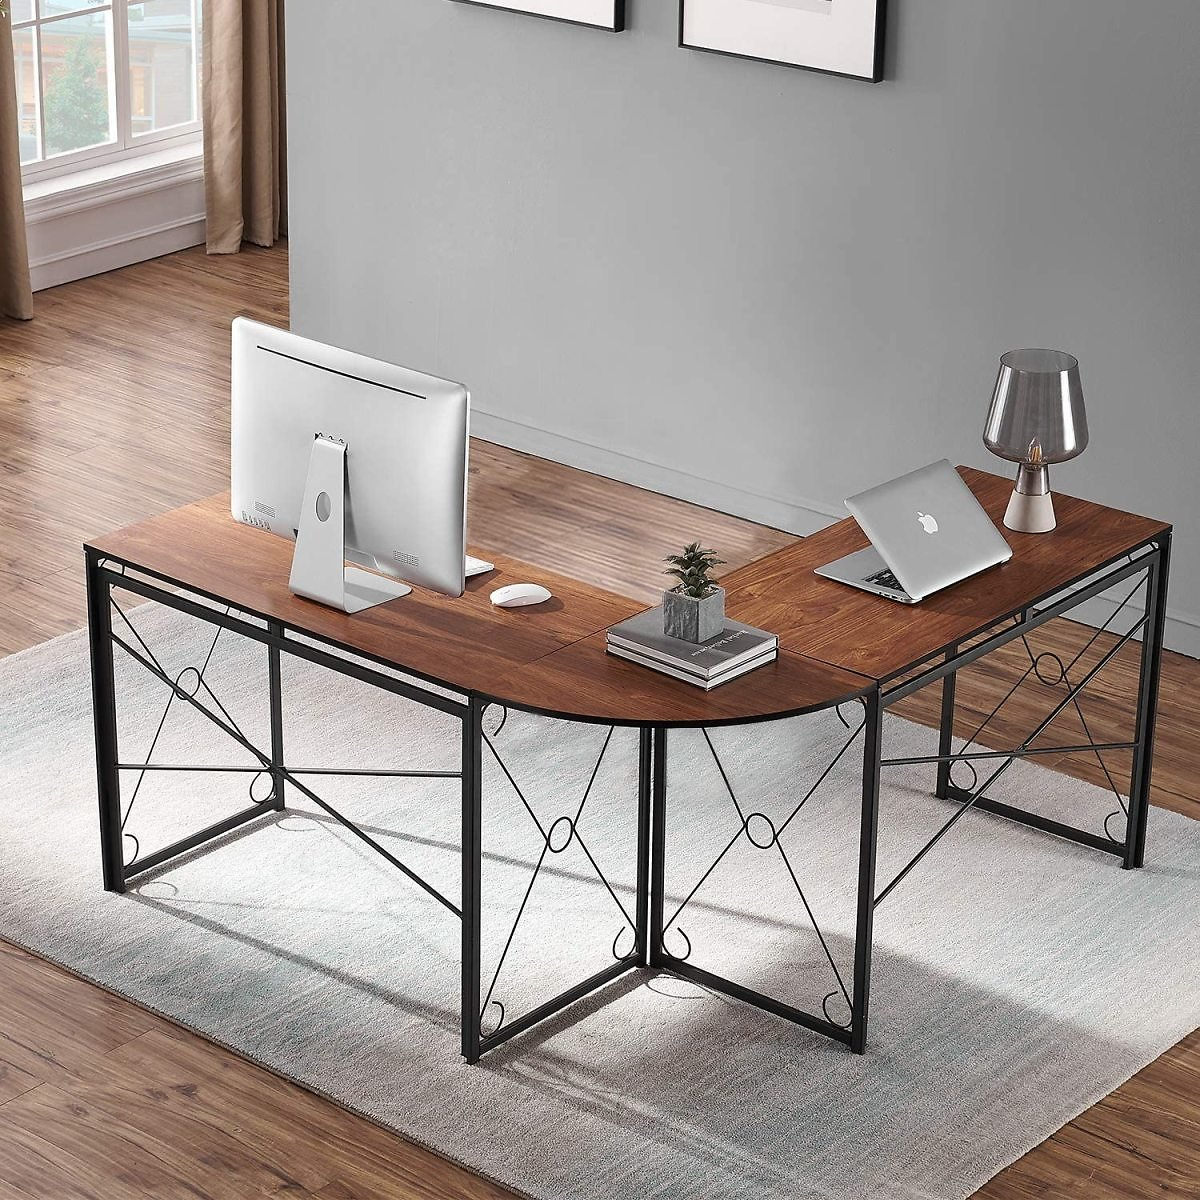 VECELO L-Shaped Corner Computer Home Office Desk Work Station for Gaming/Study, Easy Assembly, Brown